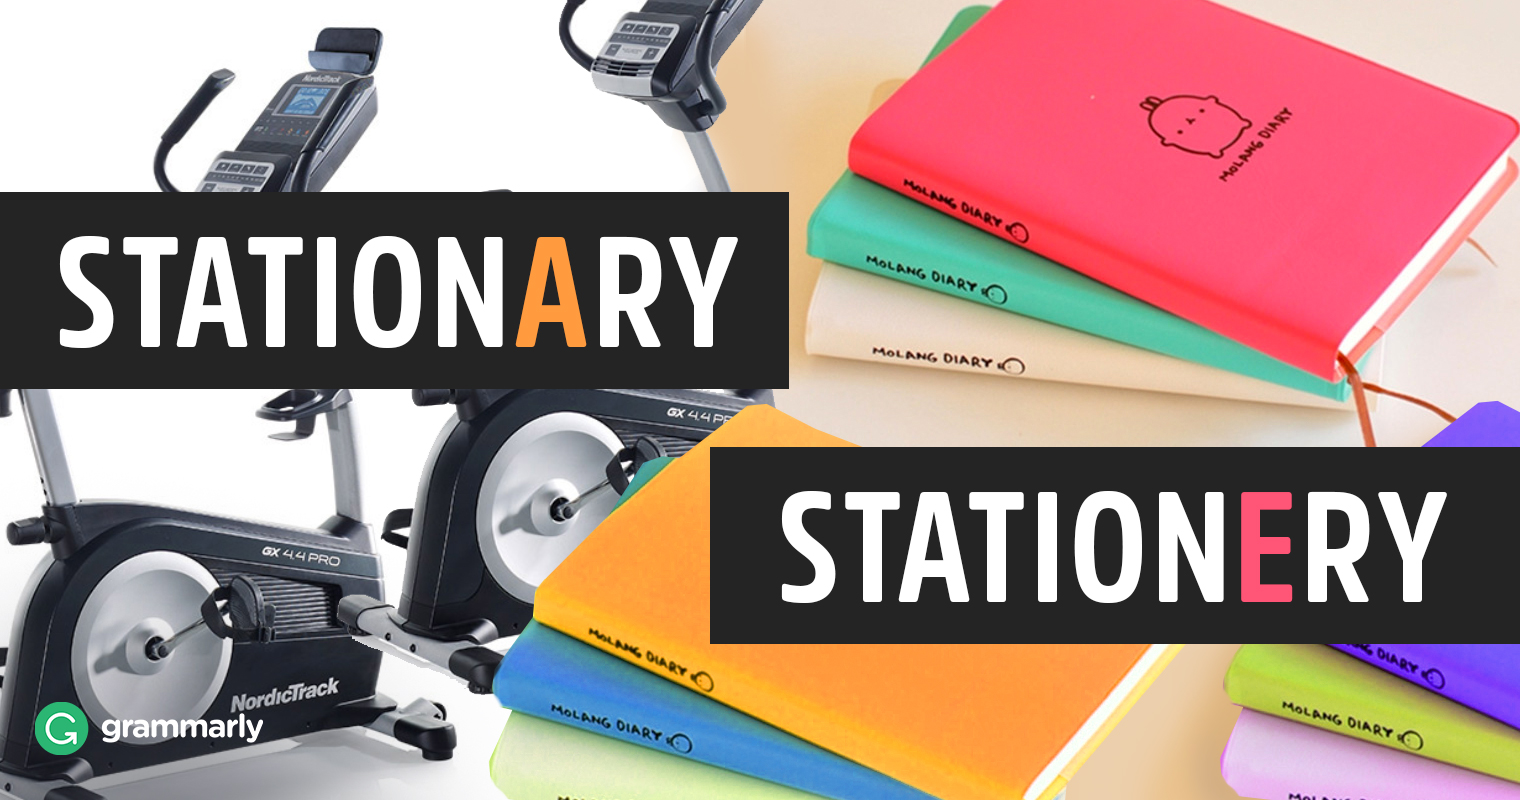 Stationary vs. Stationery—What's the Difference?